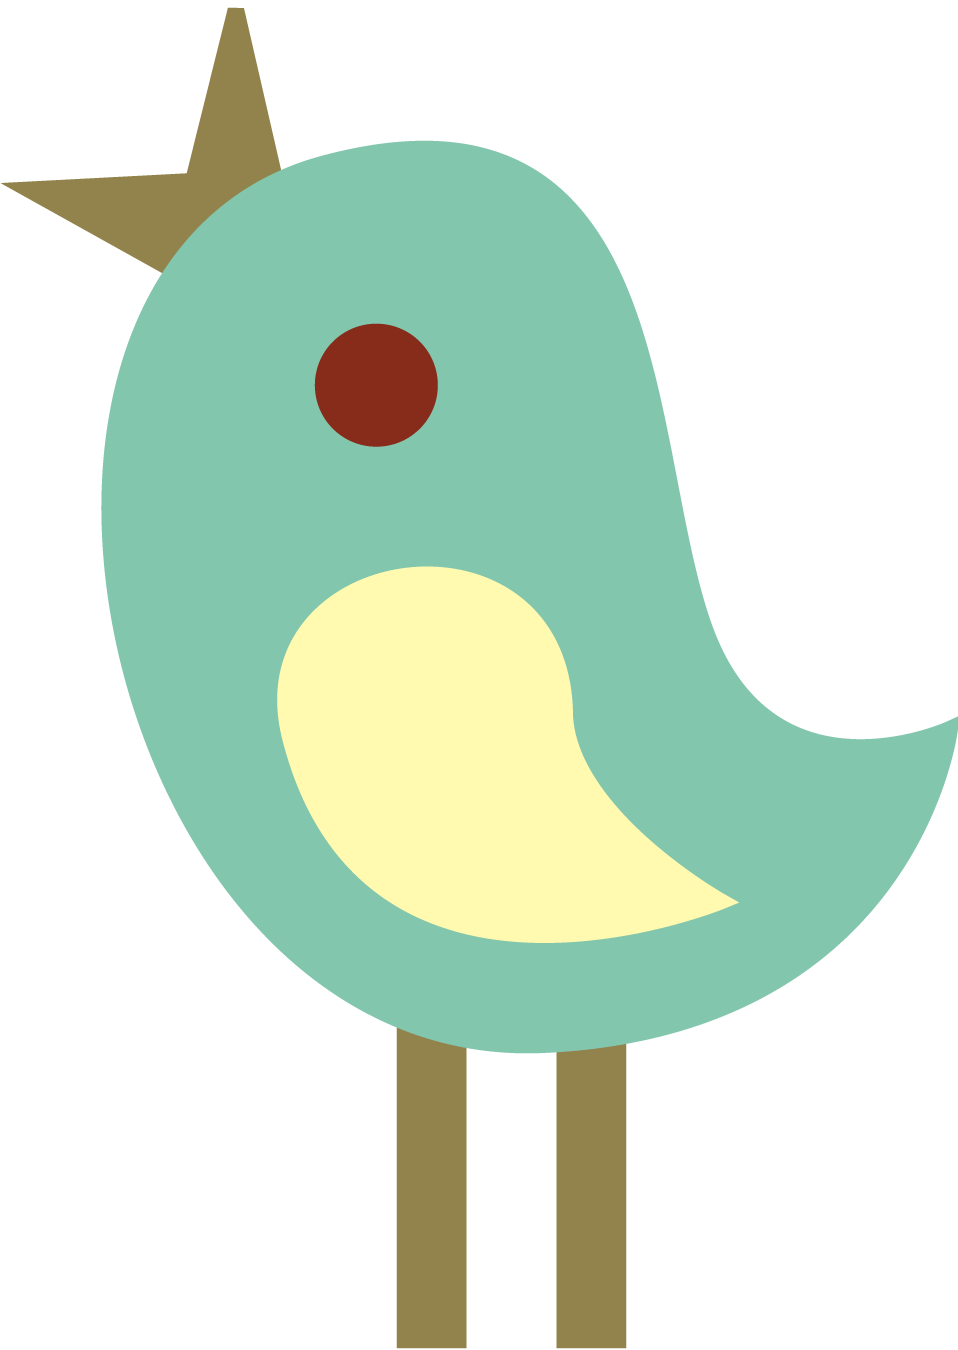 cute tweet birds clip art free clipart graphics revidevi rh revidevi wordpress com free high resolution graphics and clipart free graphics clipart download